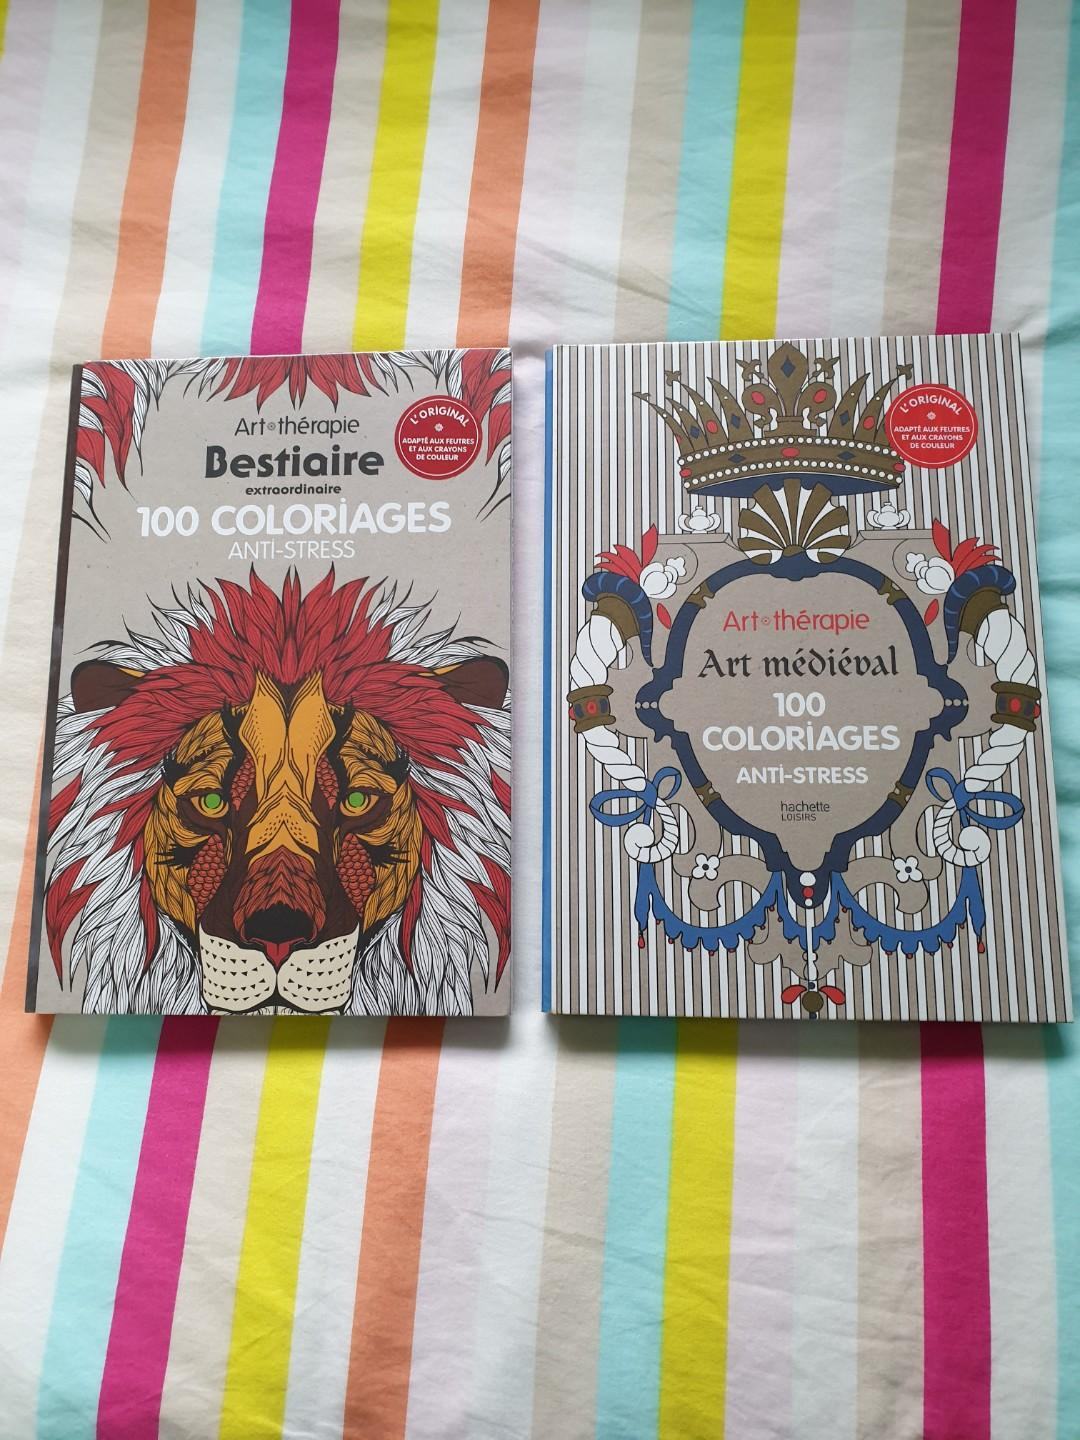 Art Therapie 100 Coloriages Anti Stress Books Stationery Magazines Others On Carousell